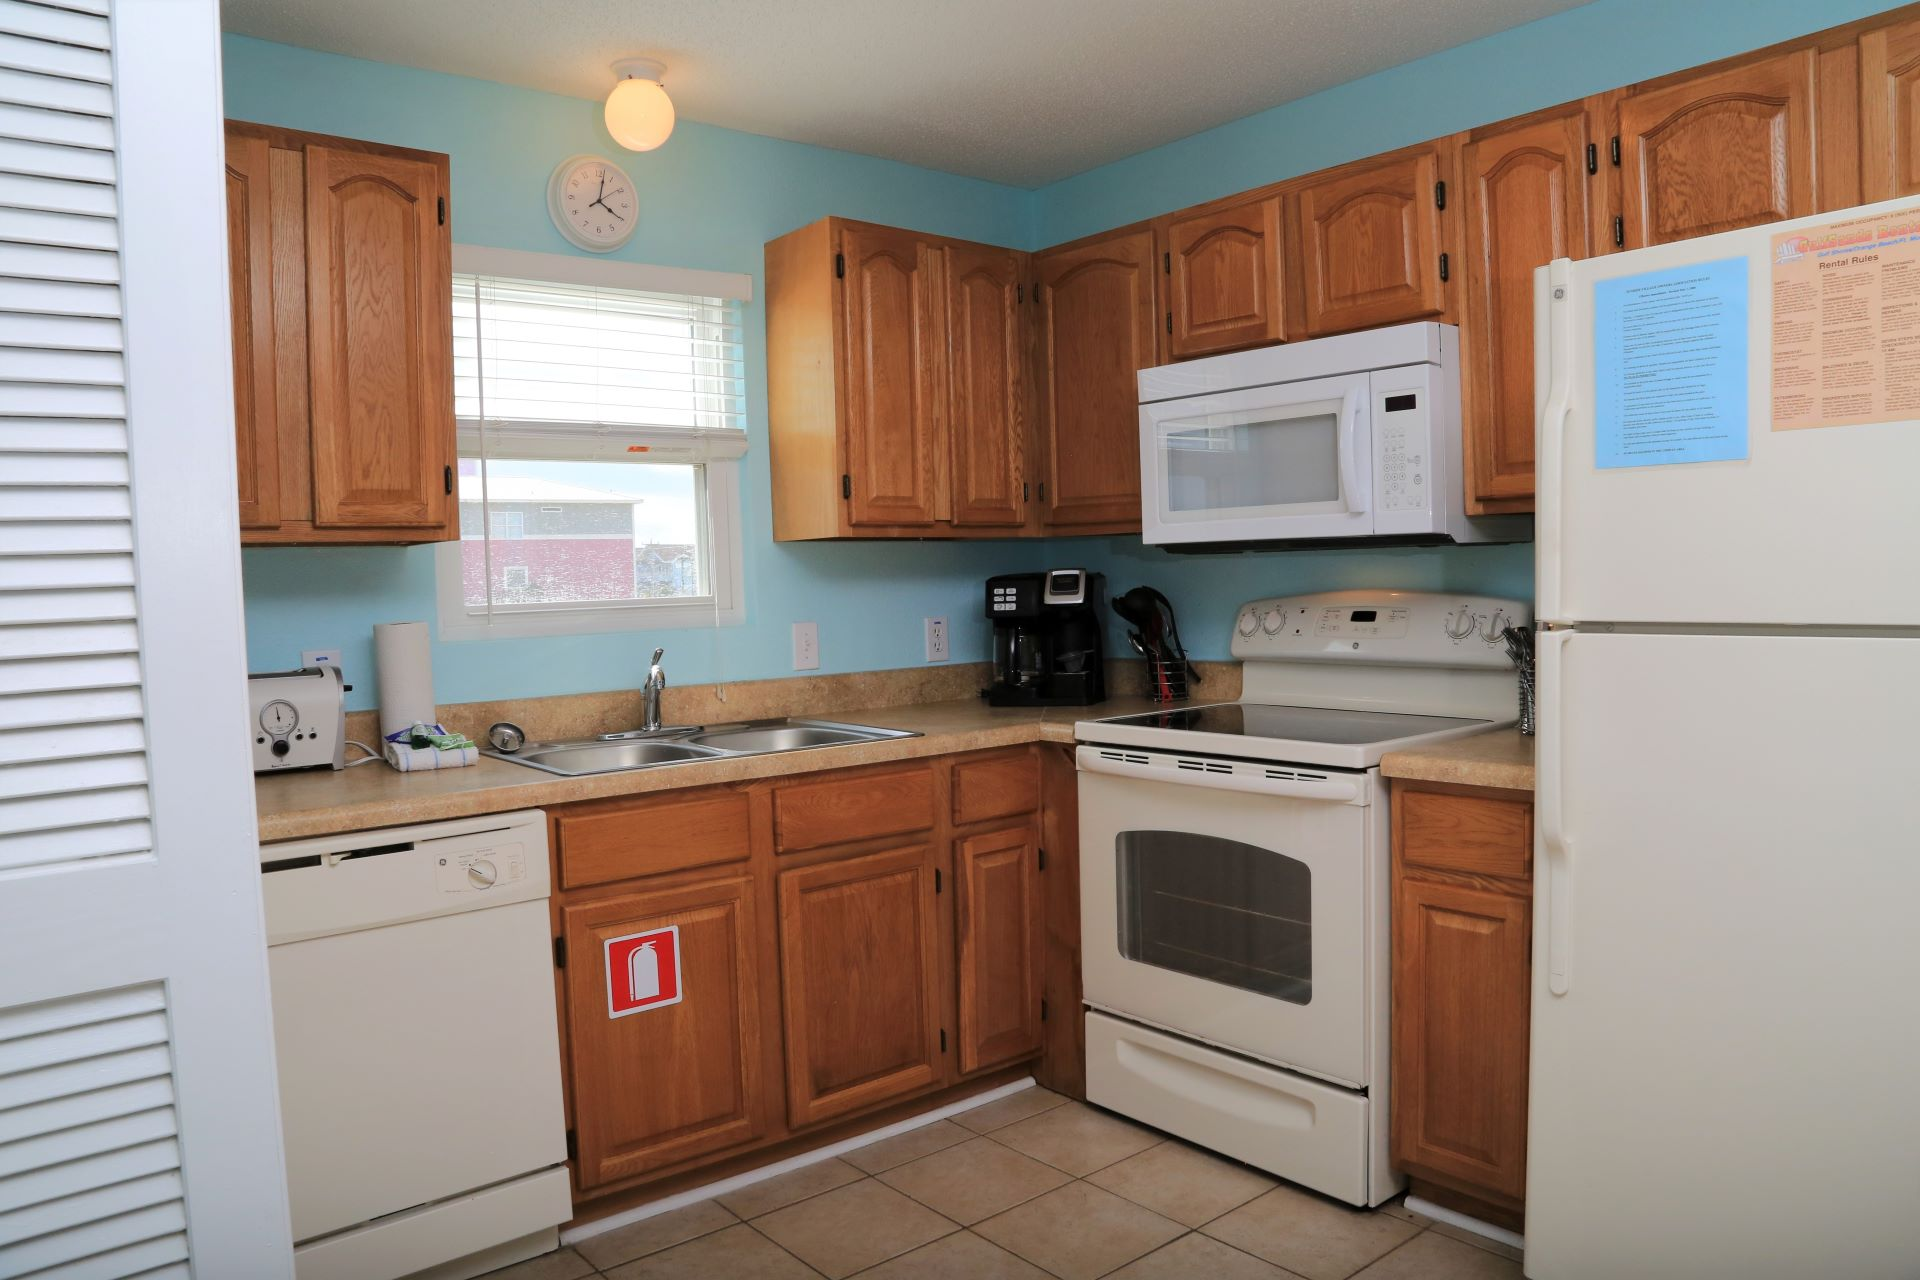 Well-equipped kitchen makes cooking in a breeze.